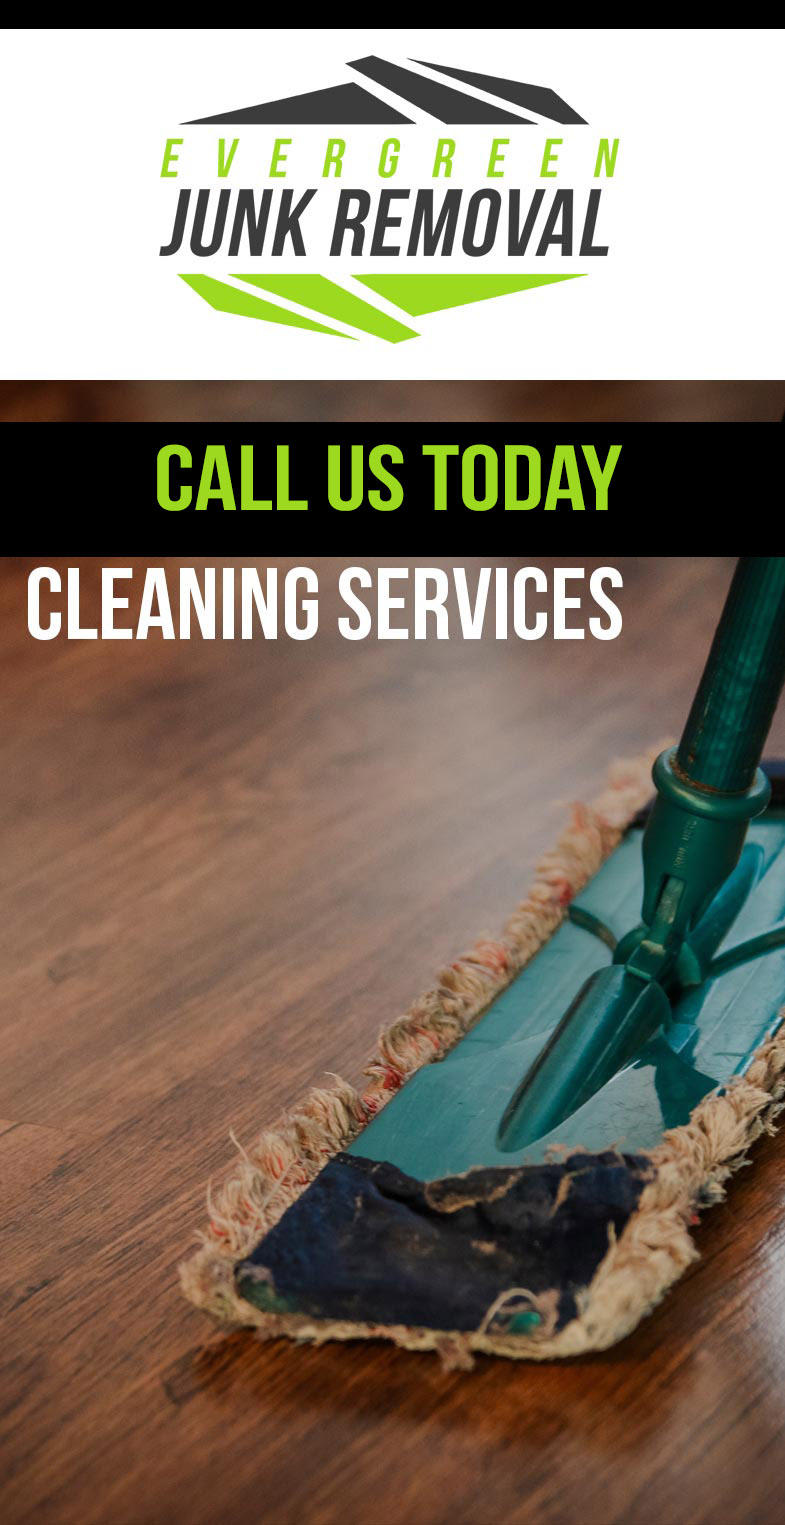 Cooper City Florida Maid Services